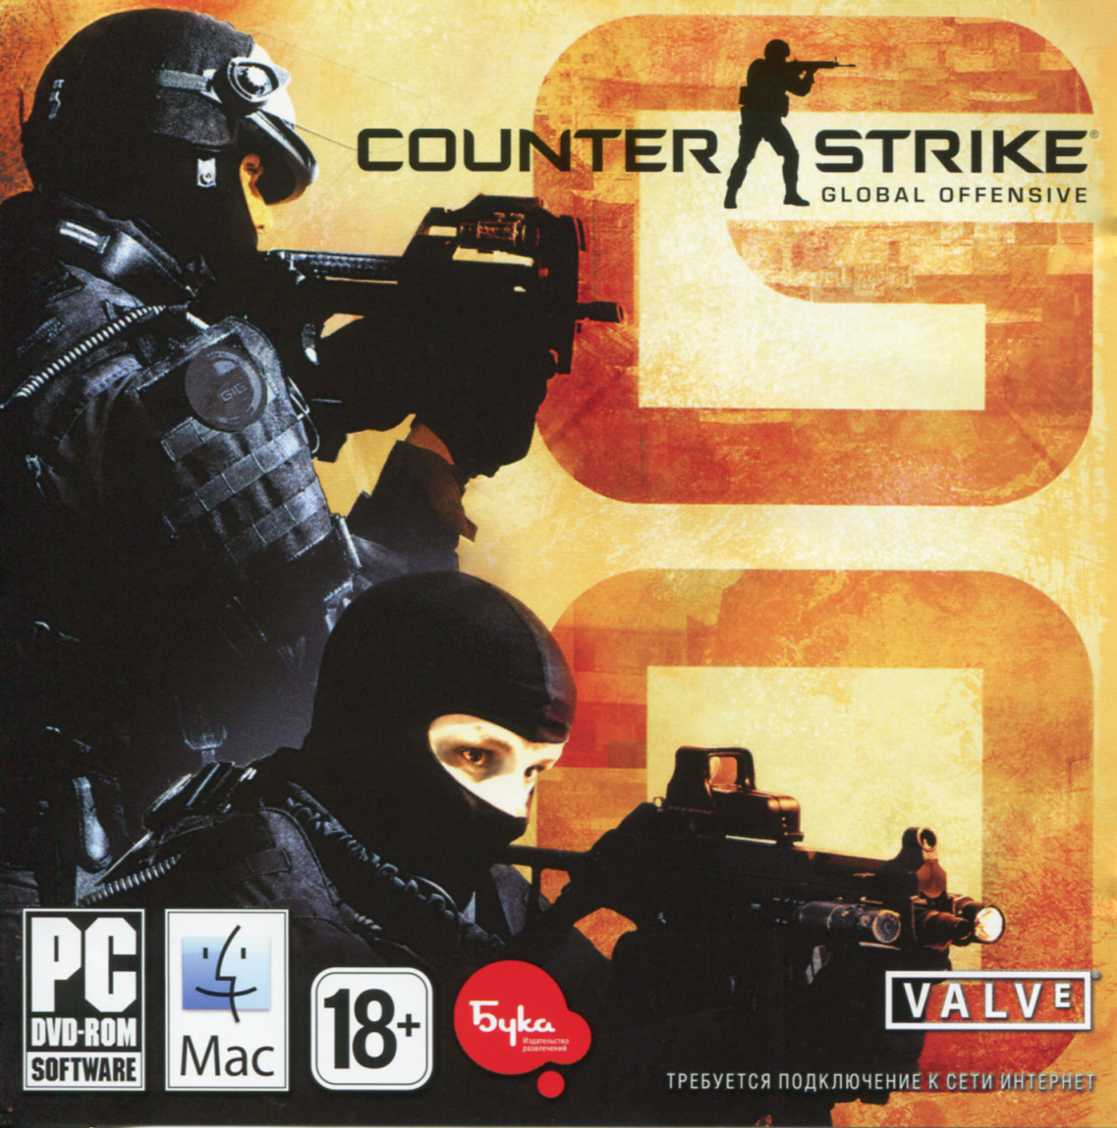 How To Download Counter Strike Global Offensive For Free Pc.